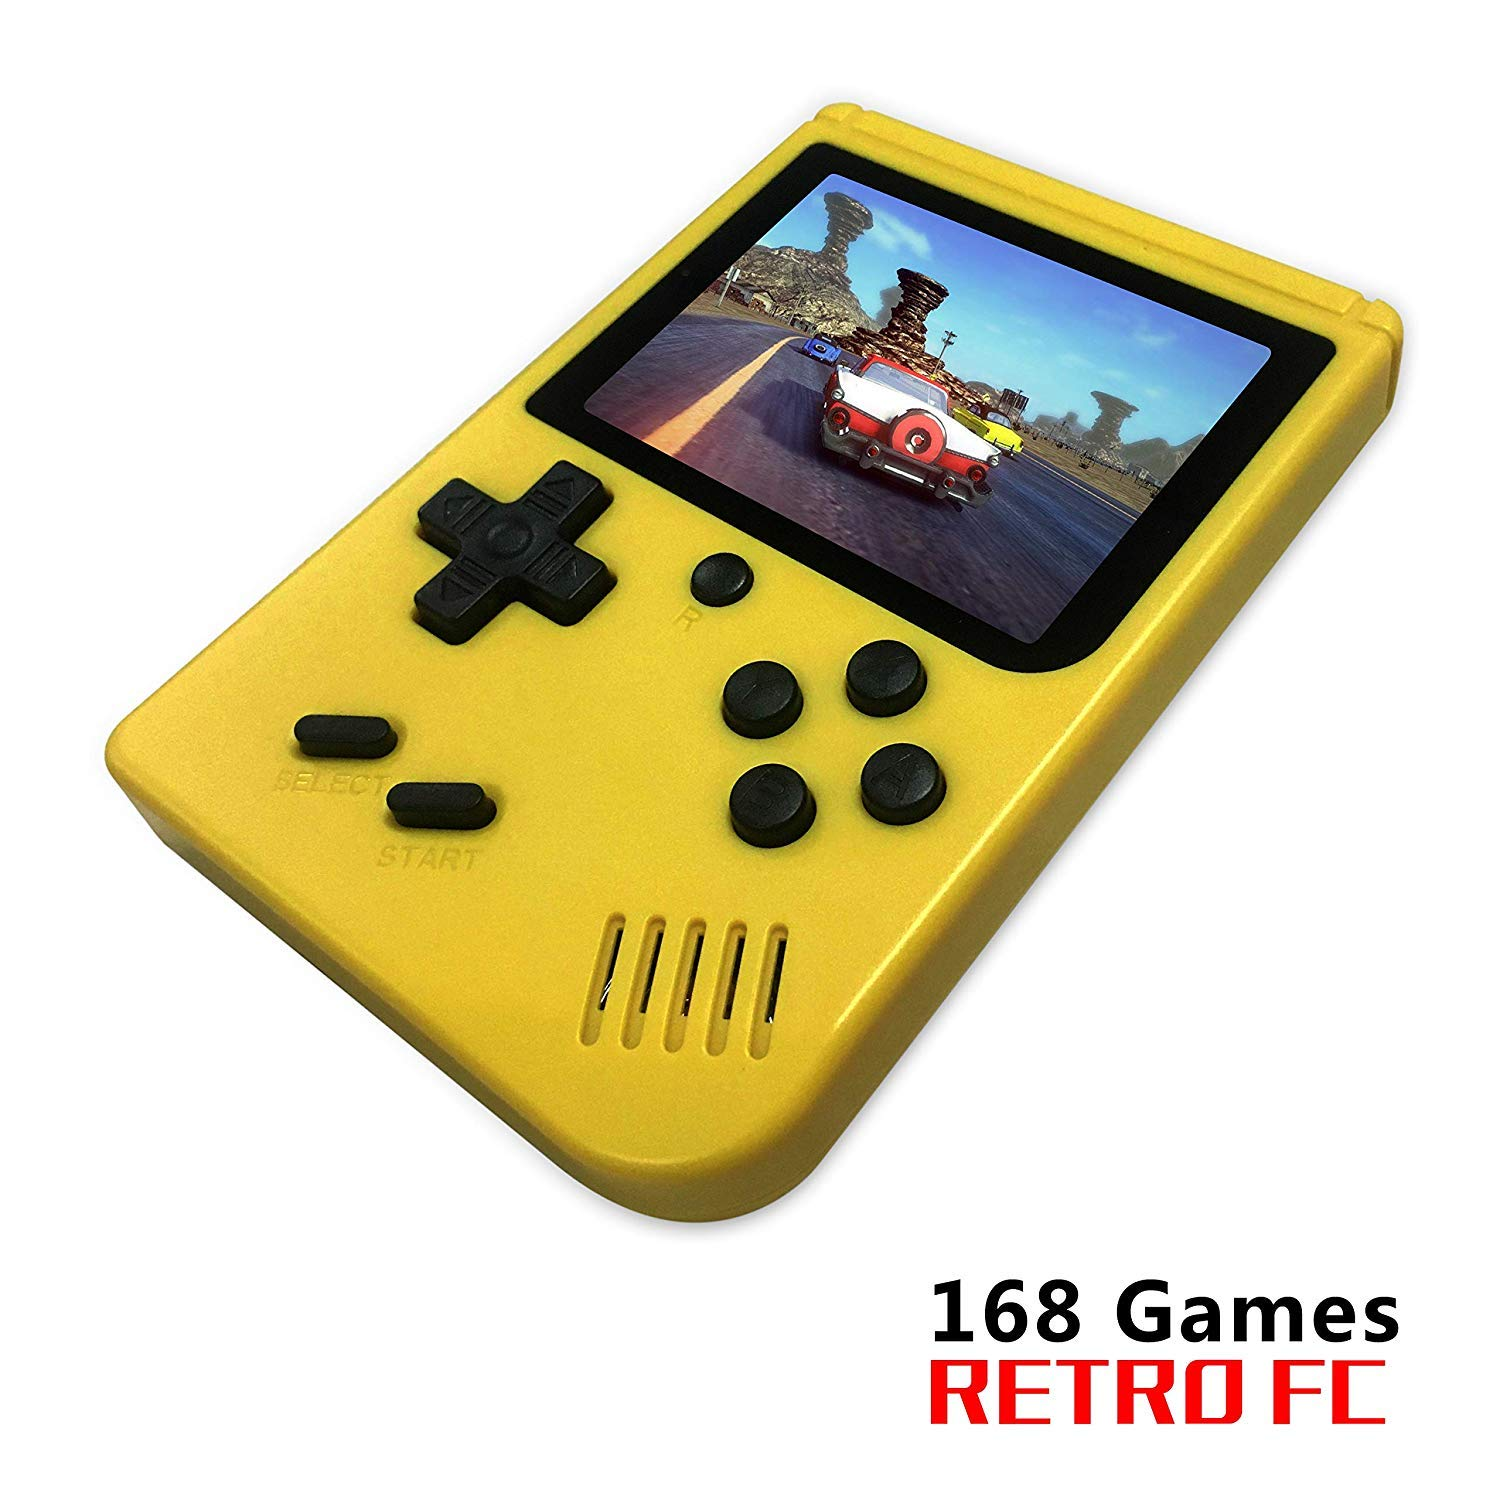 FLYFISH Handheld Game Console, Retro FC Game Console 3 Inch 168 Classic Games , Birthday Present for Children -Yellow